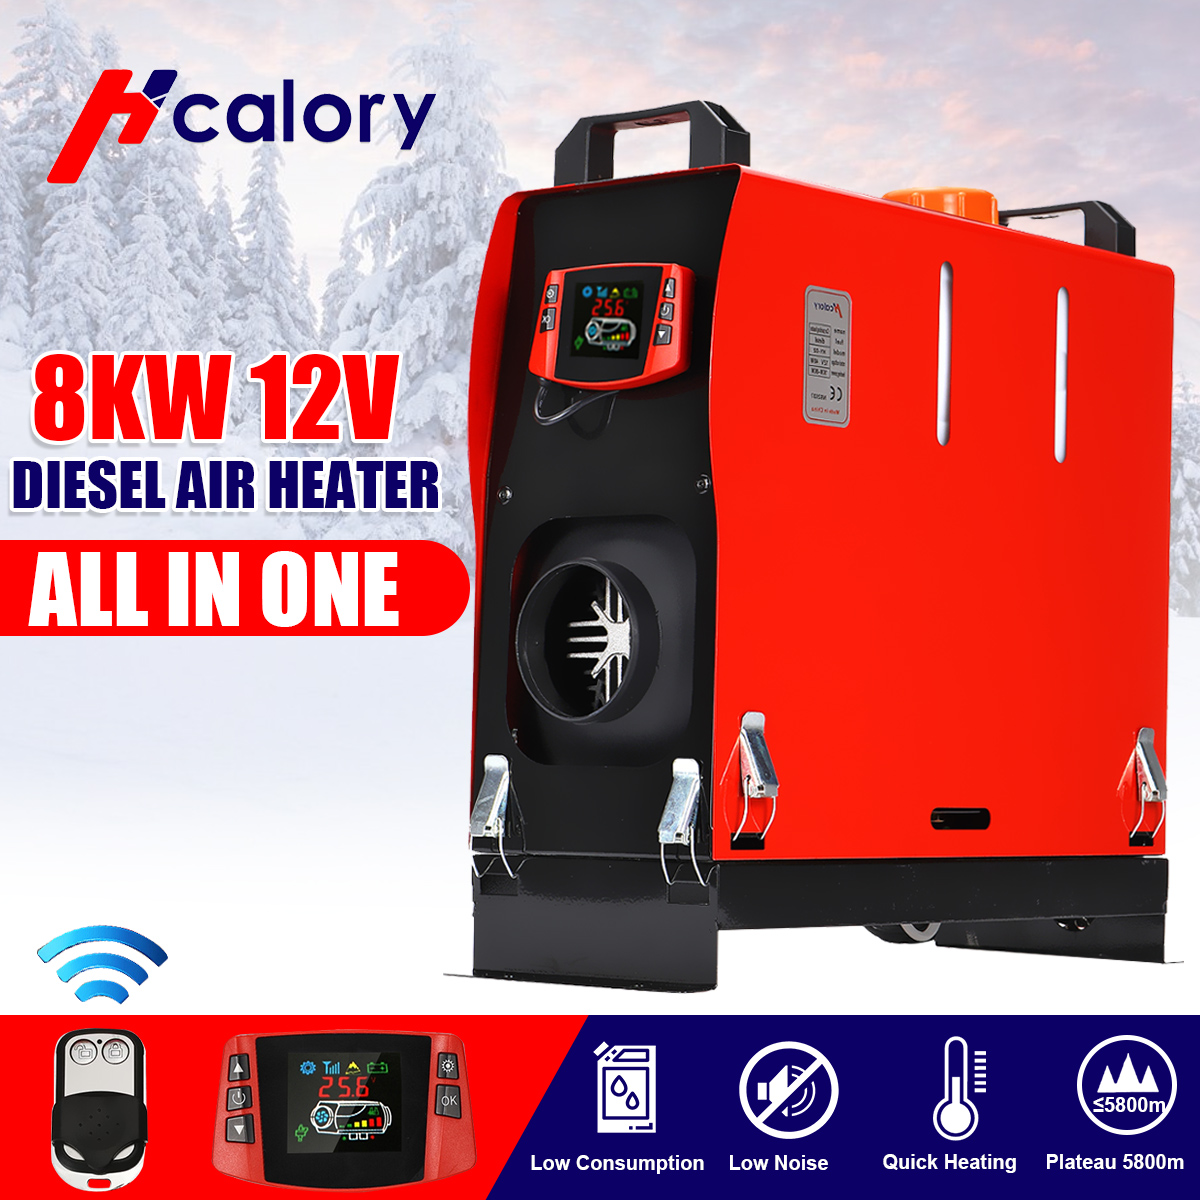 All In One 8KW 12V Car Heater Diesels Air Heater Single Hole New Diamond LCD Monitor Parking Warmer For Car Truck Bus Boat RV